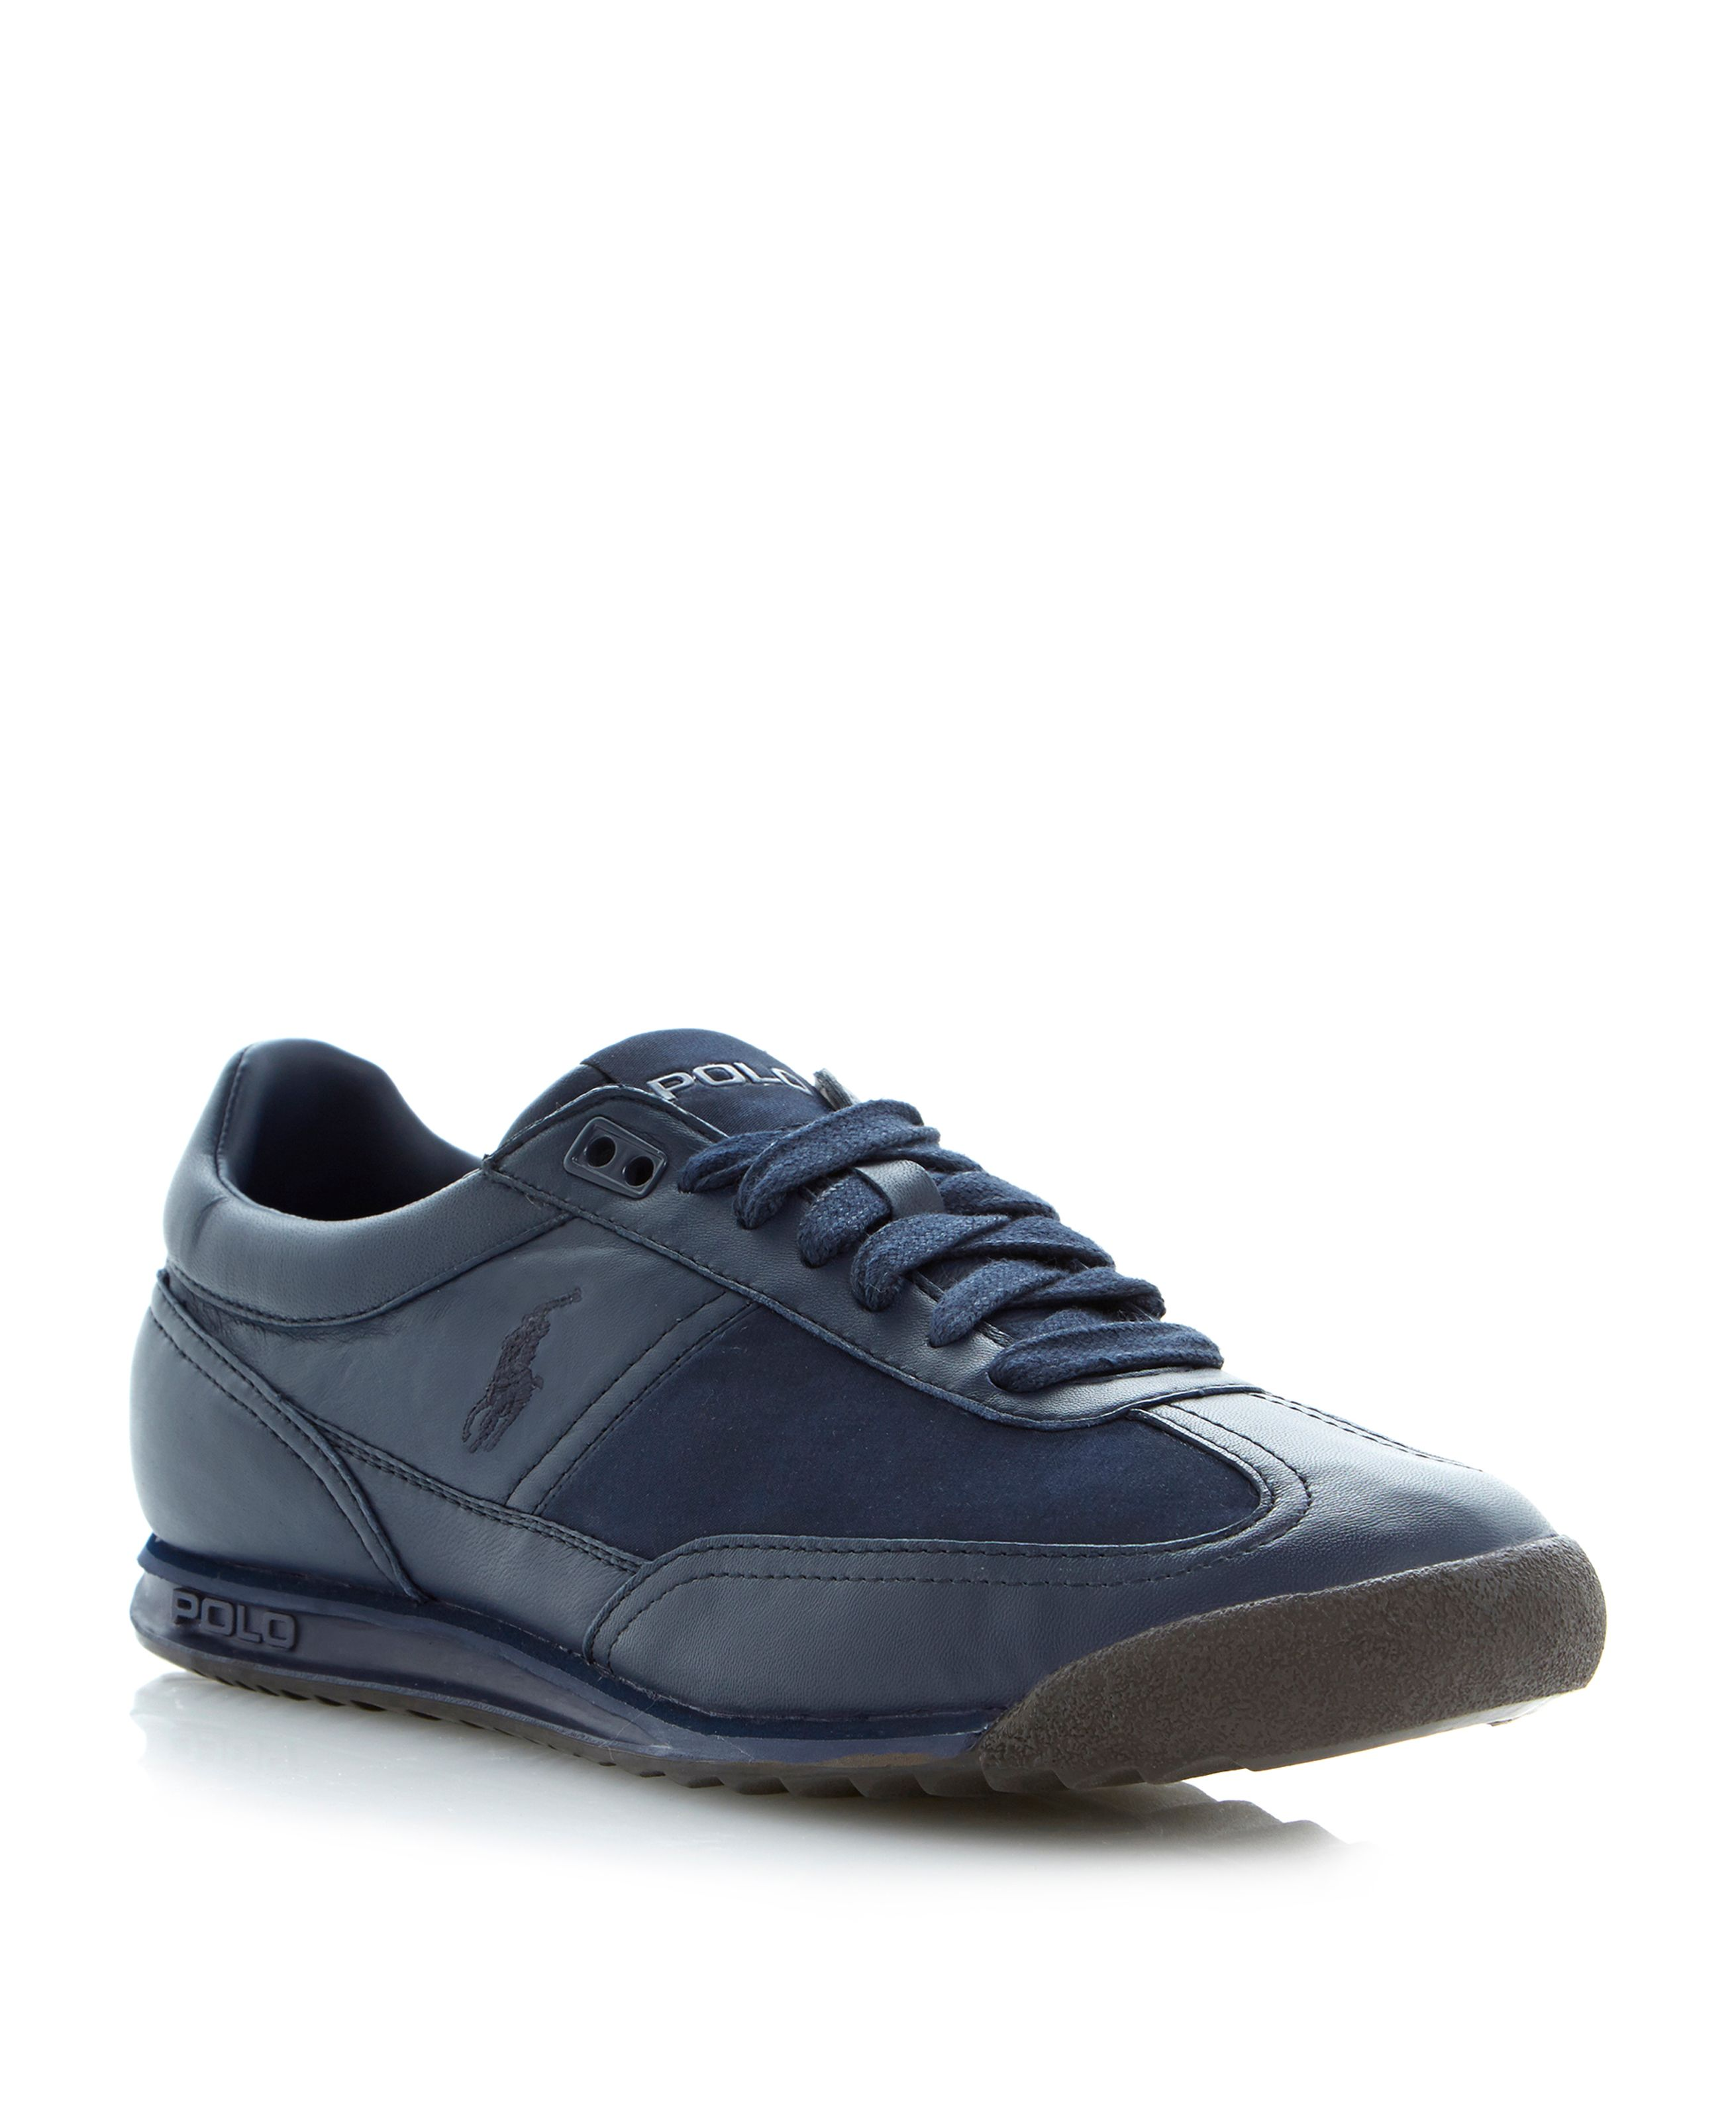 Vicars runner lace up trainers